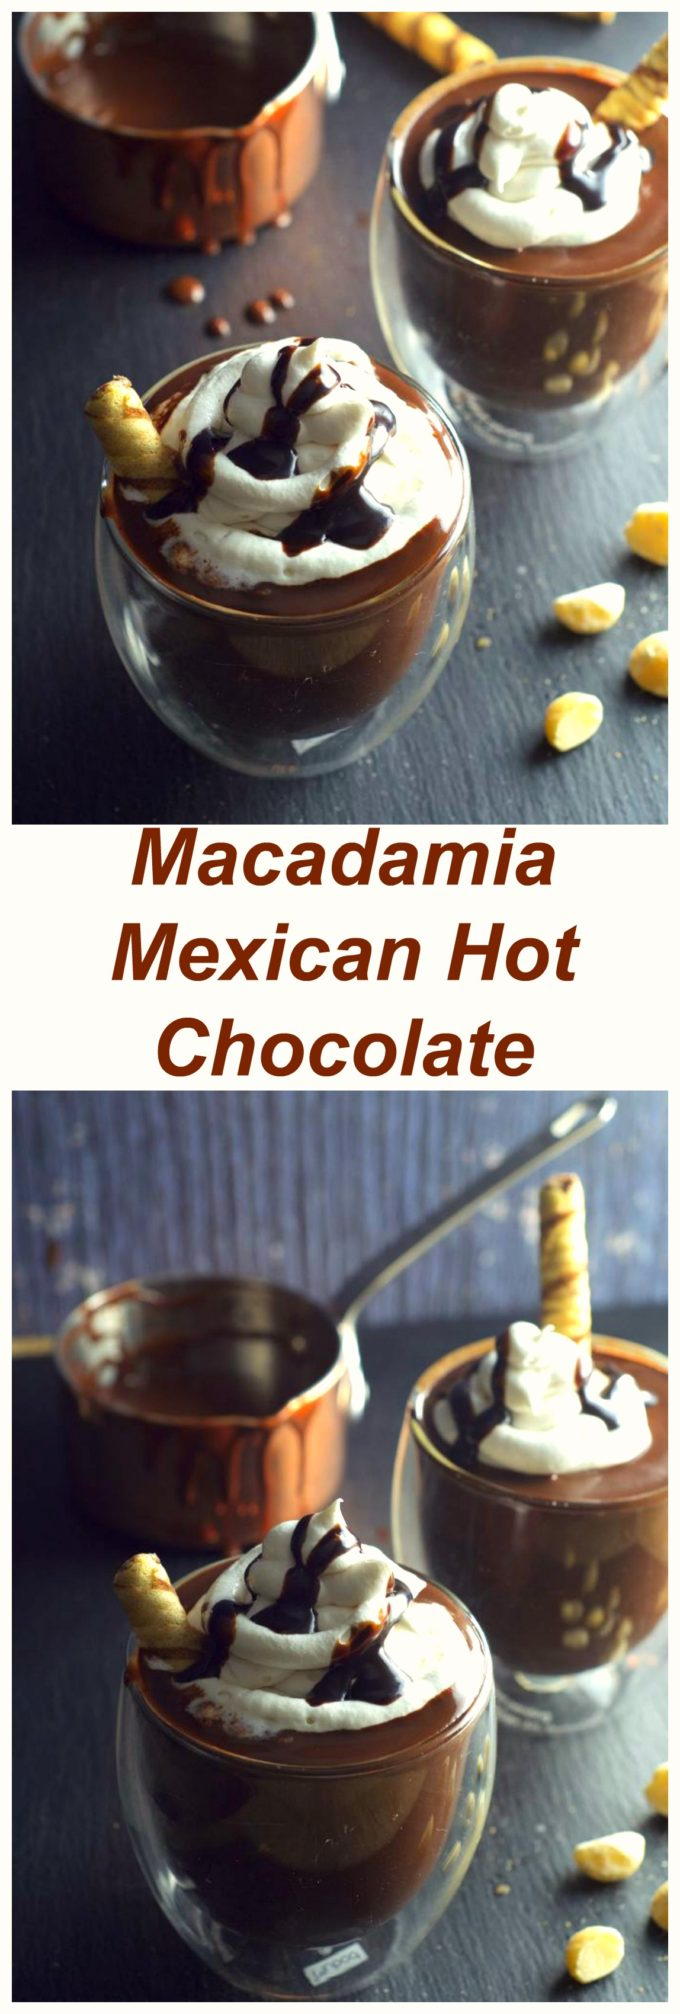 Macadamia Mexican Hot Chocolate – thick, decadent and with a hint of spice. Made with delicious macadamia nut milk!